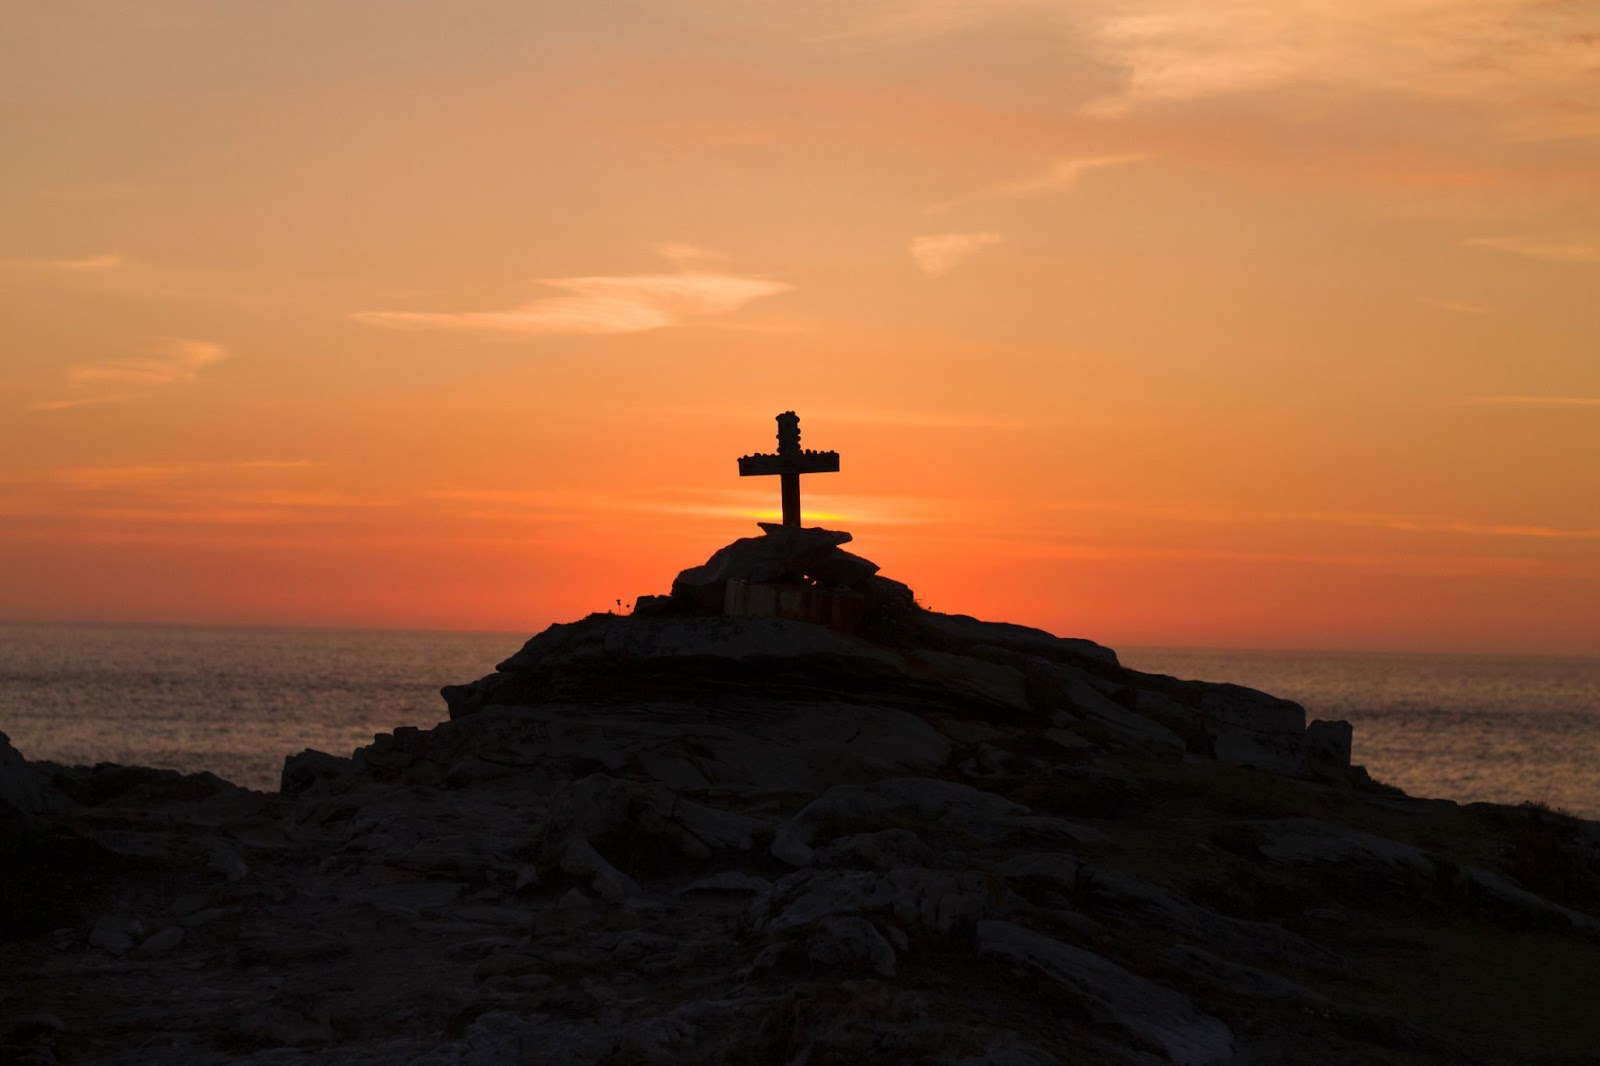 A cross on a cliff over the ocean at sunset